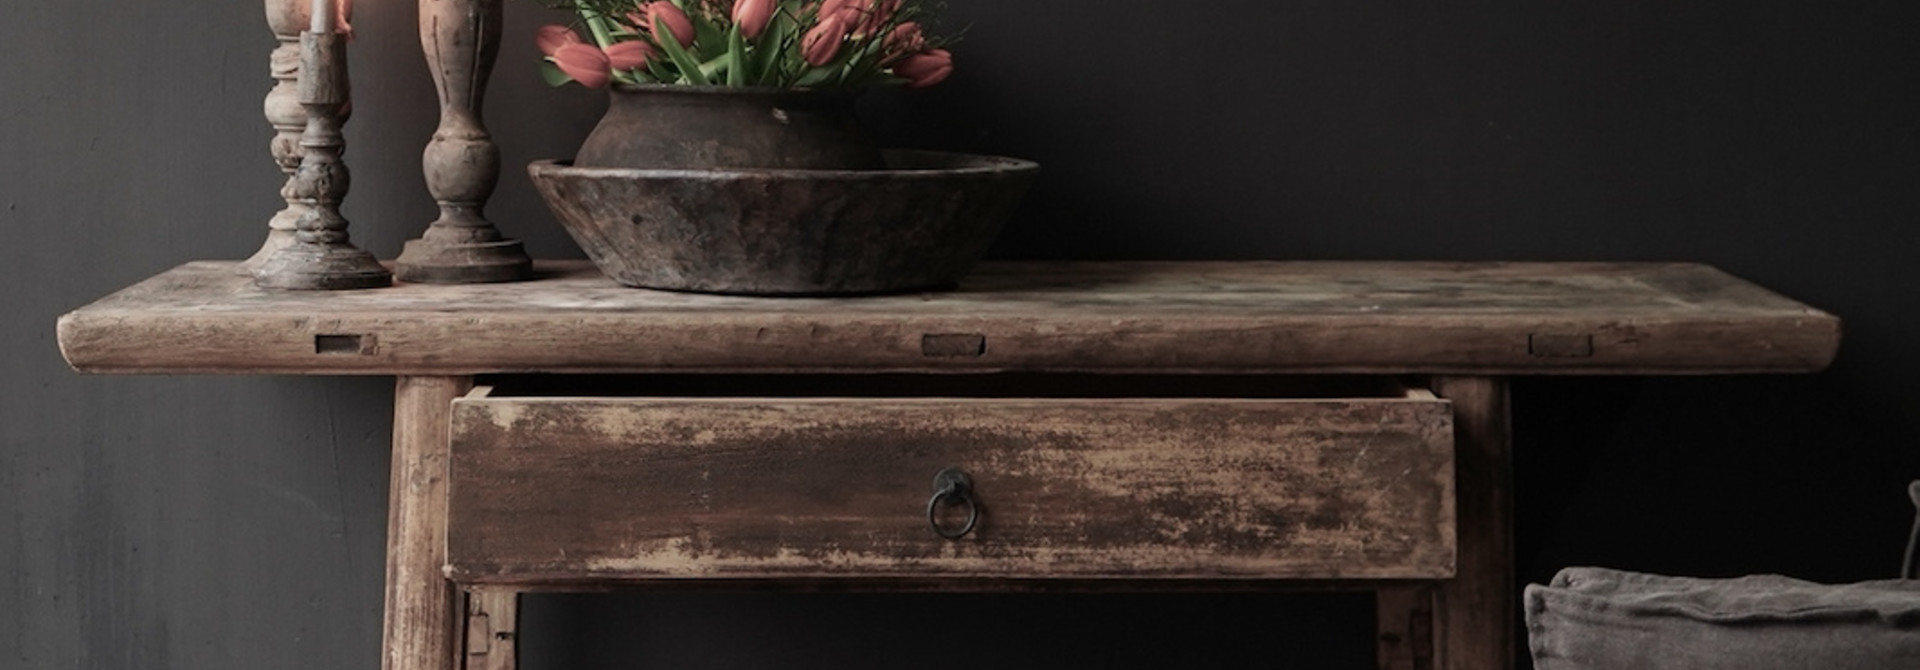 Authentic Sidetable or wall table with a drawer